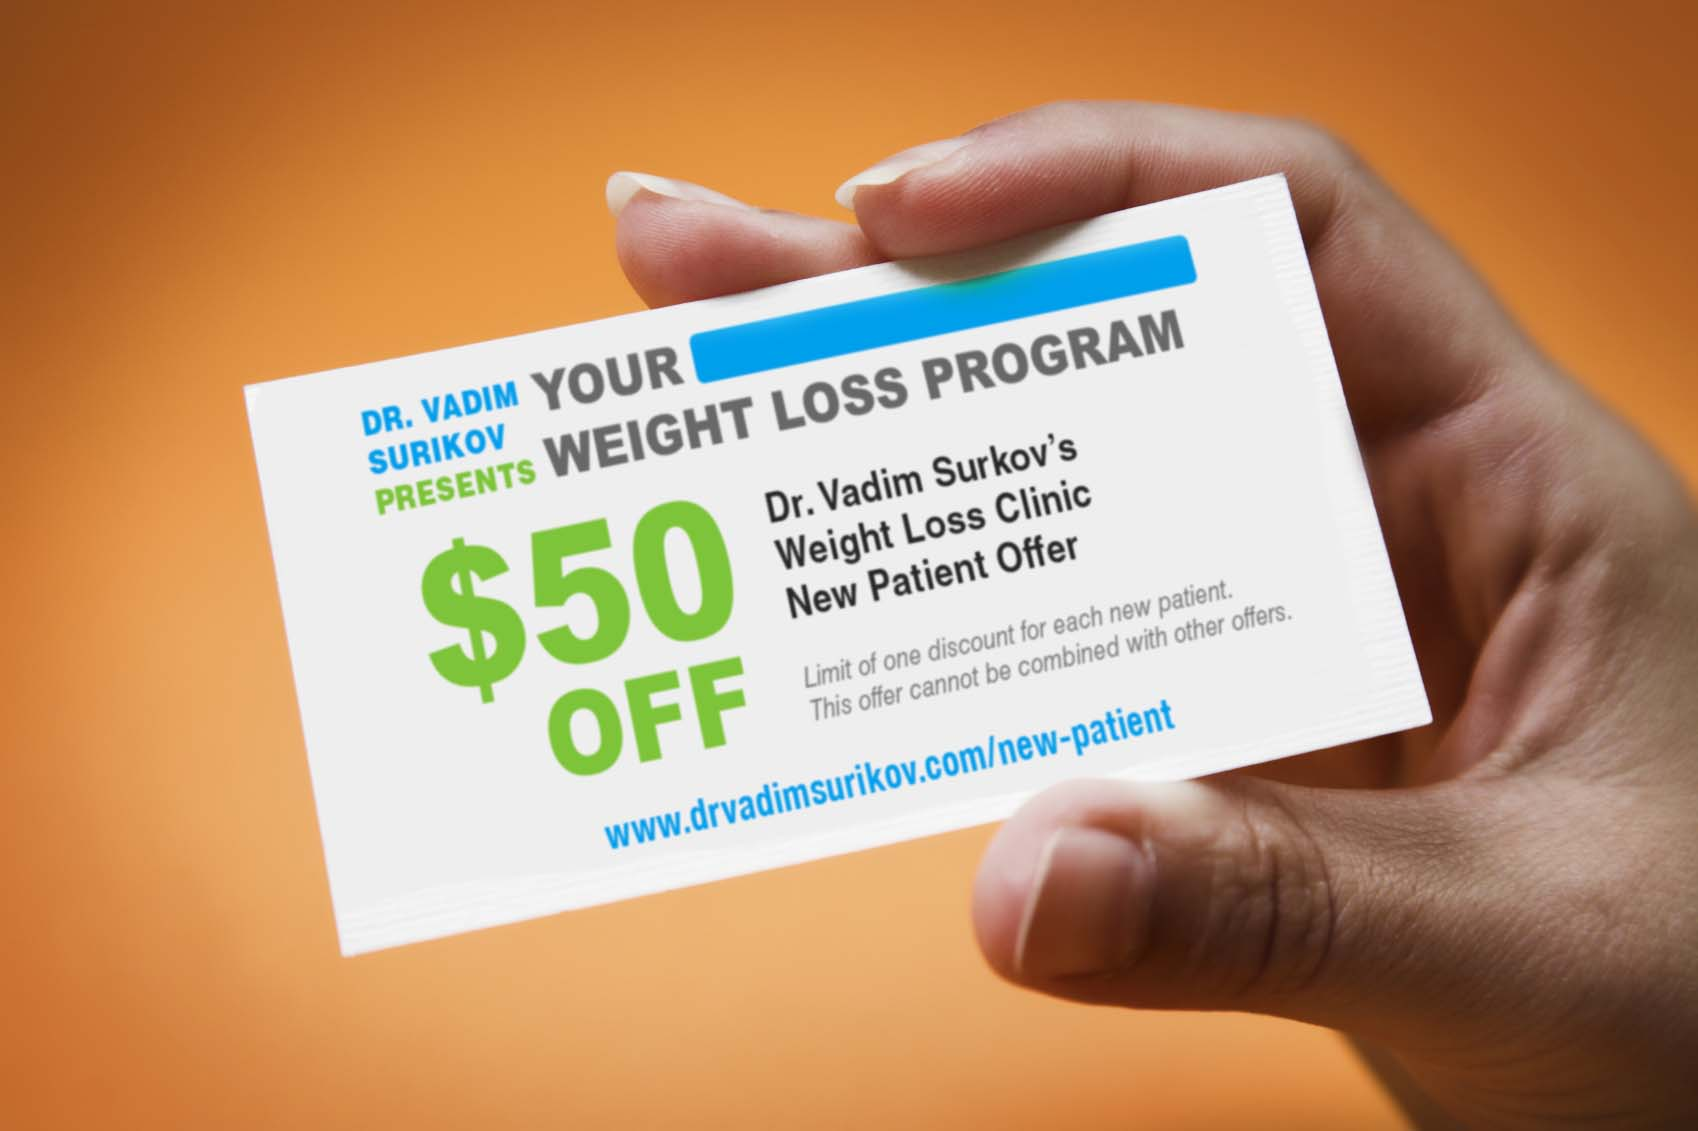 weight loss new patient offer Dr. Vadim Surikov